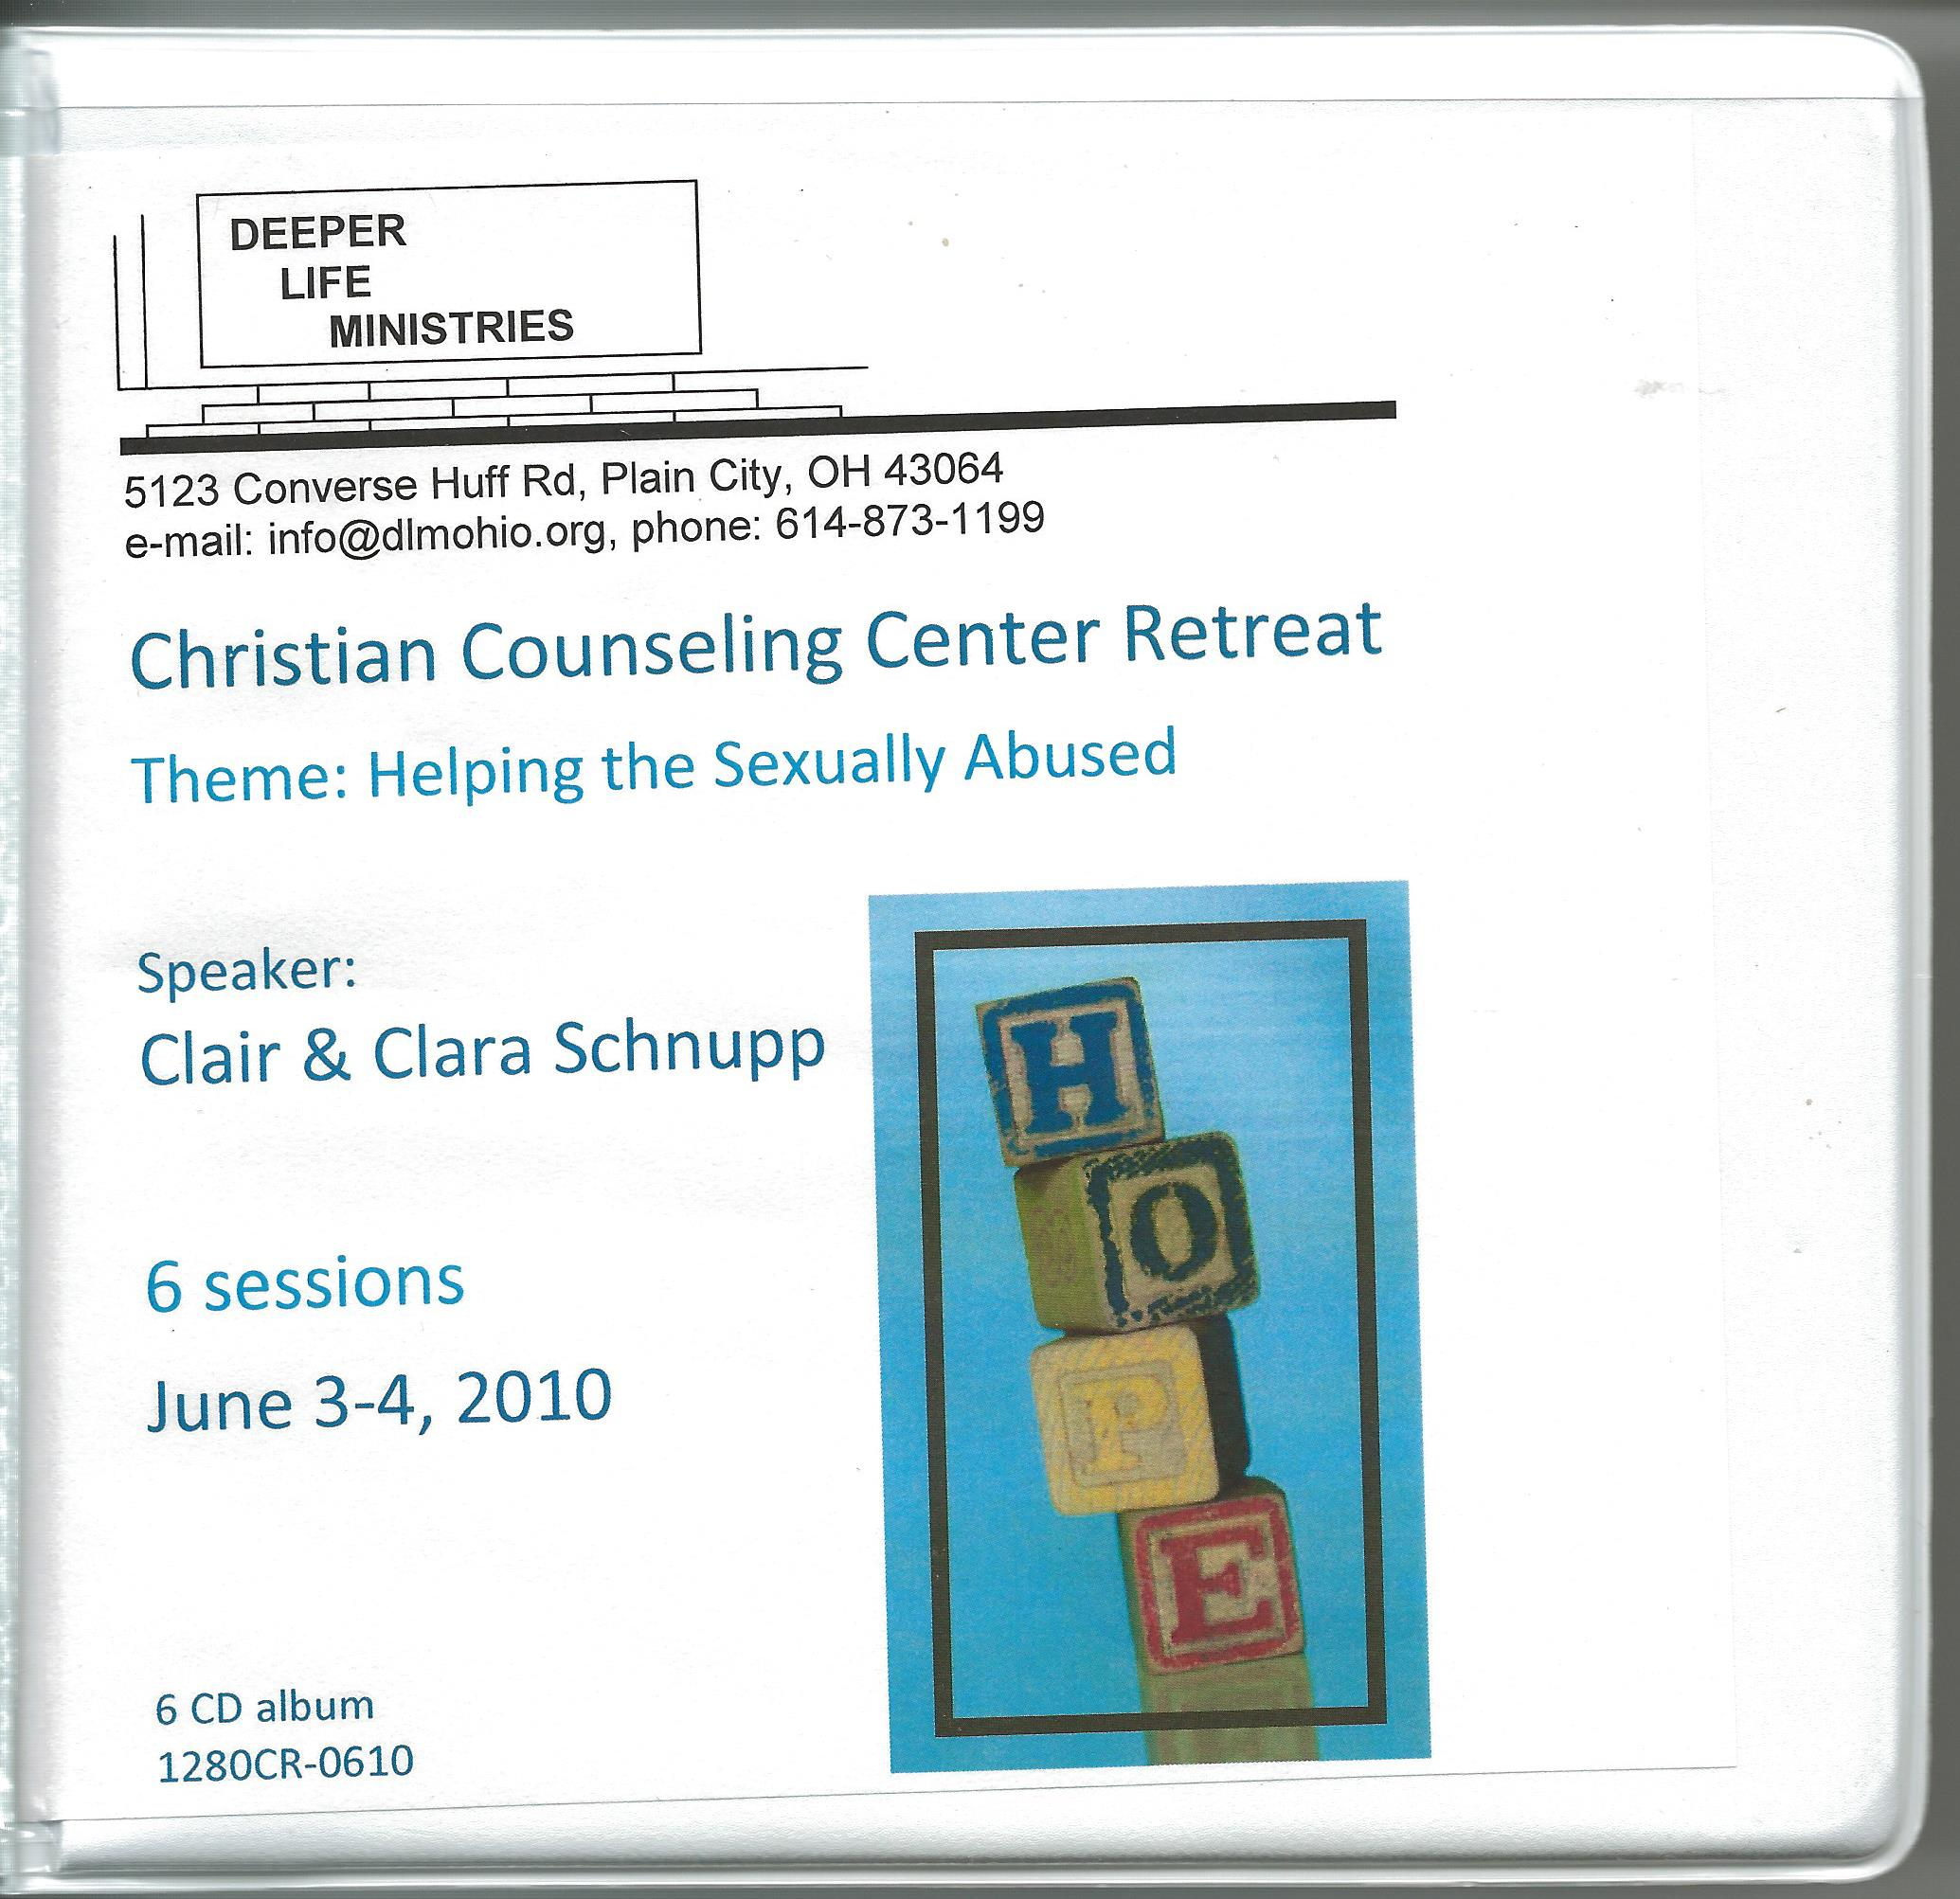 CHRISTIAN COUNSELING CENTER RETREAT 2010, CDs